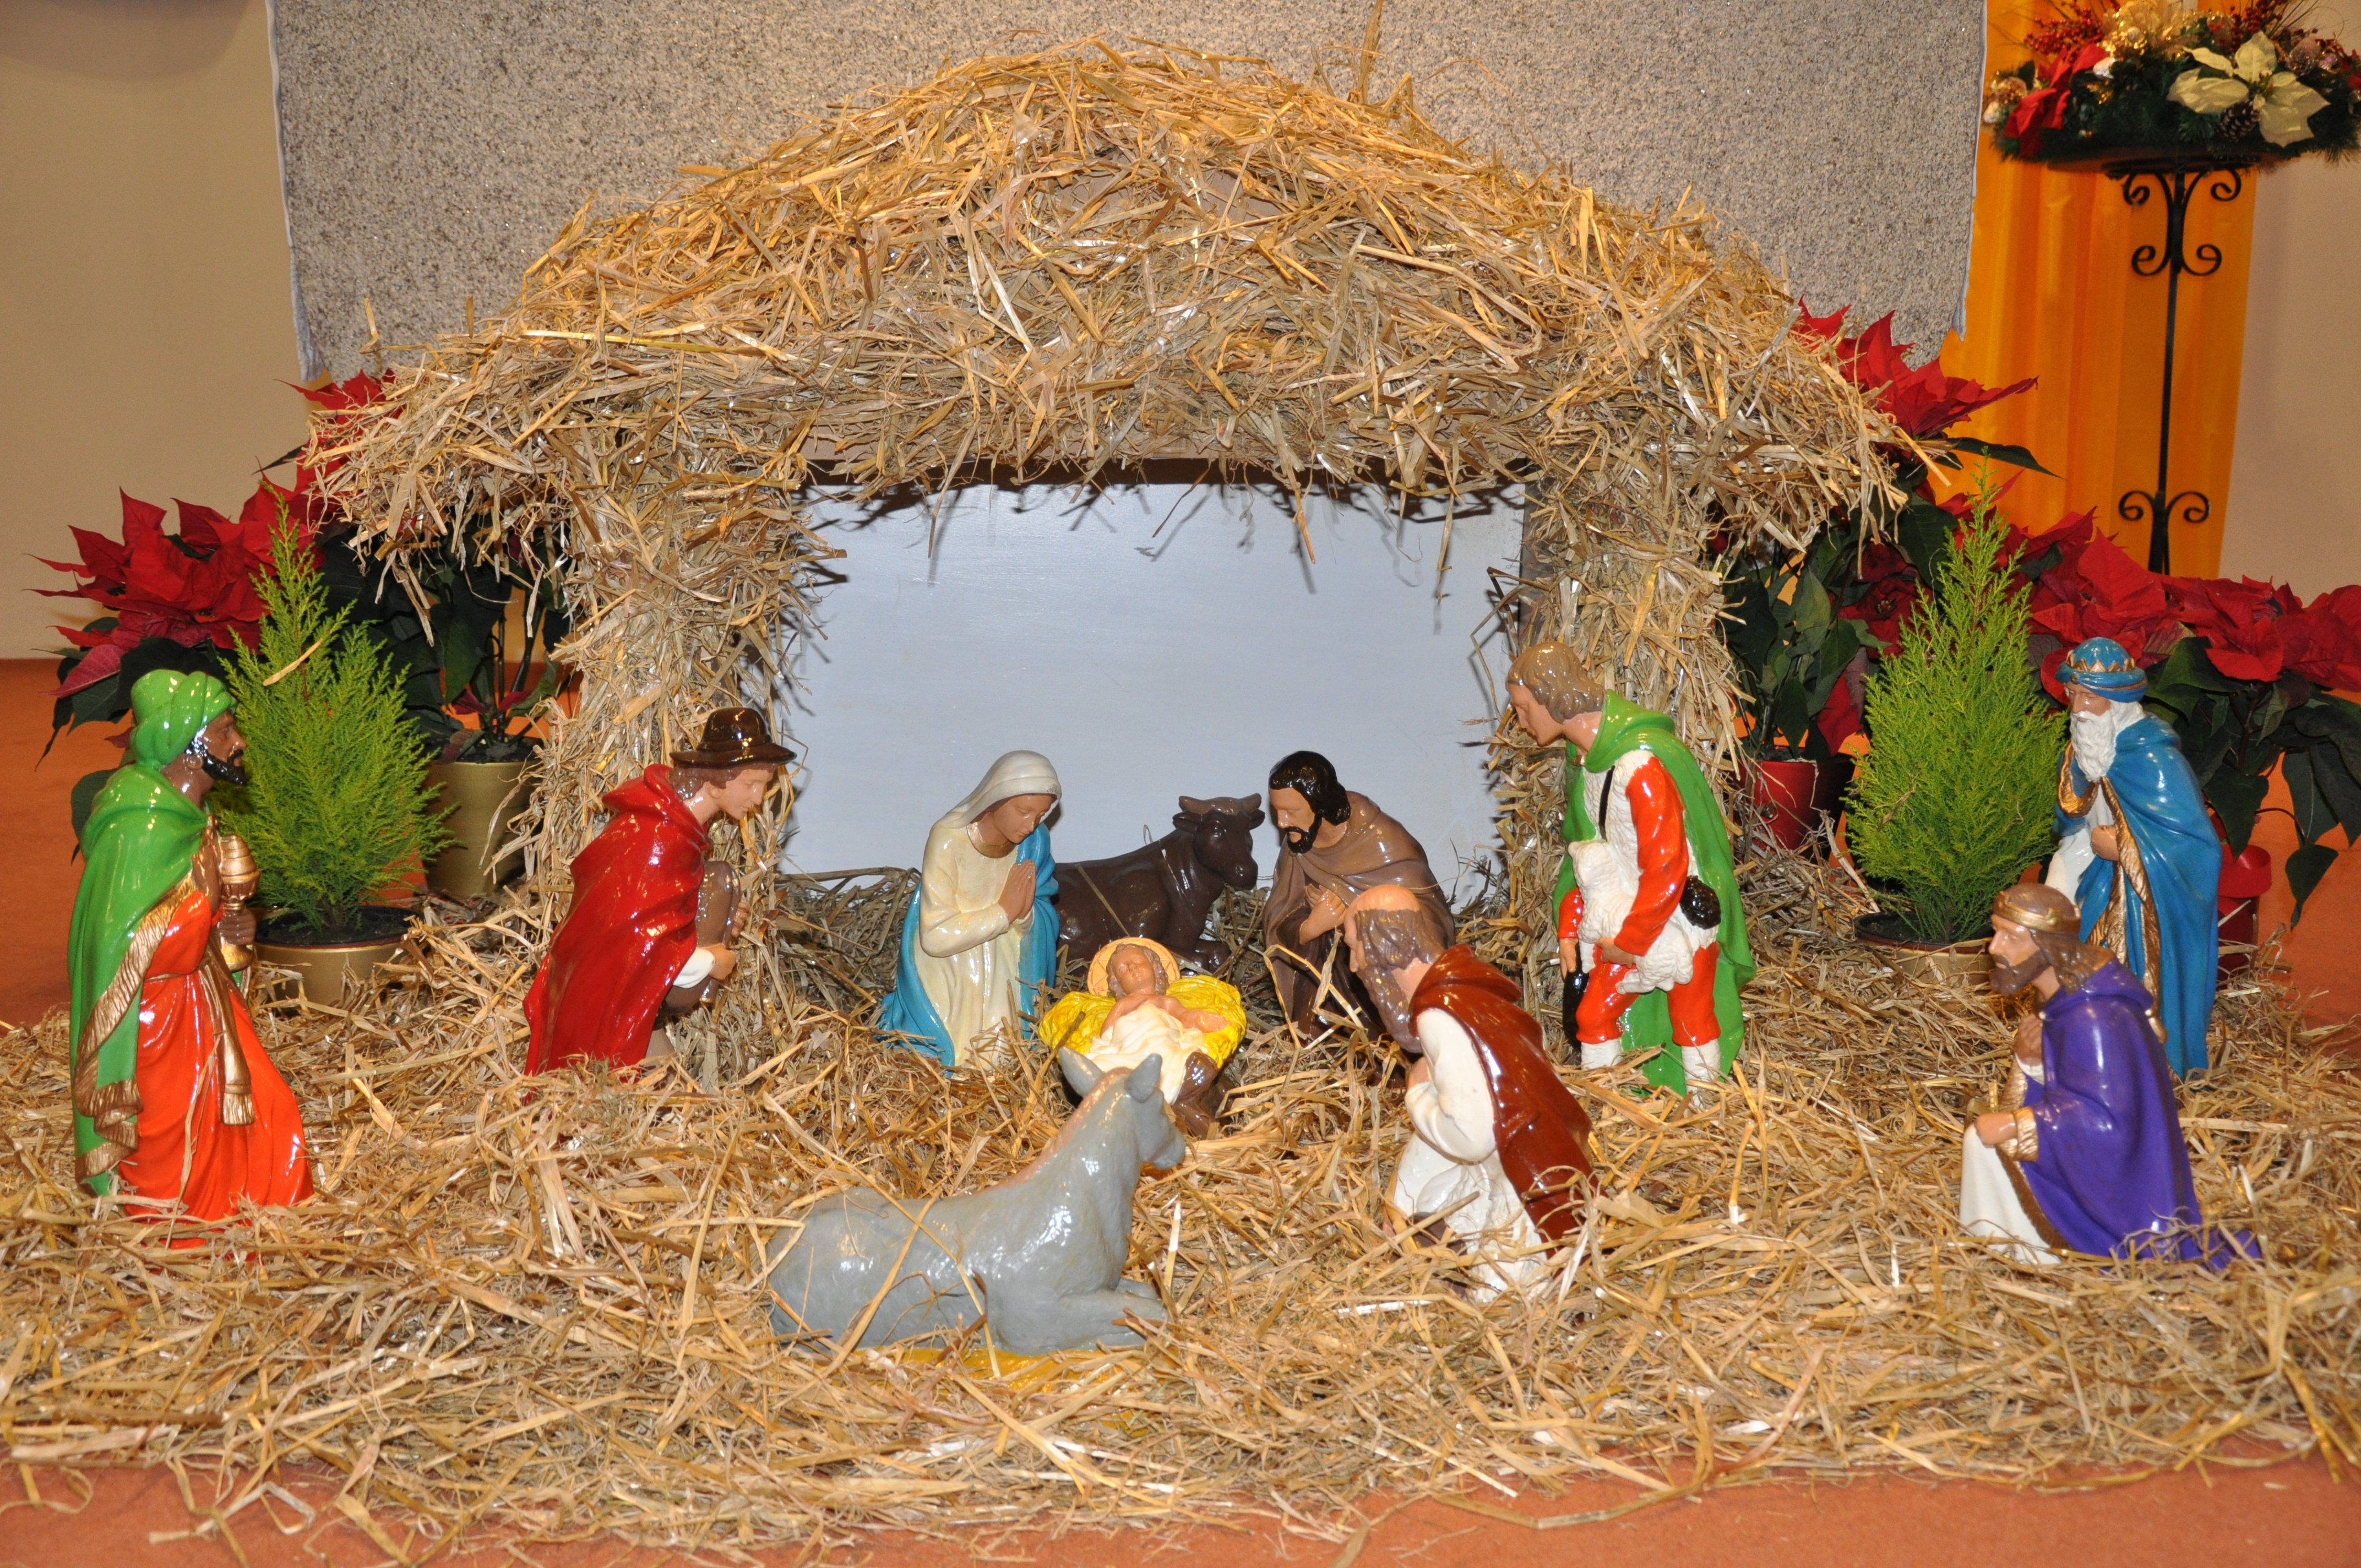 Christmas In Ireland 2020 Christmas 2019 and New Year 2020 Schedule   BLESSED SACRAMENT